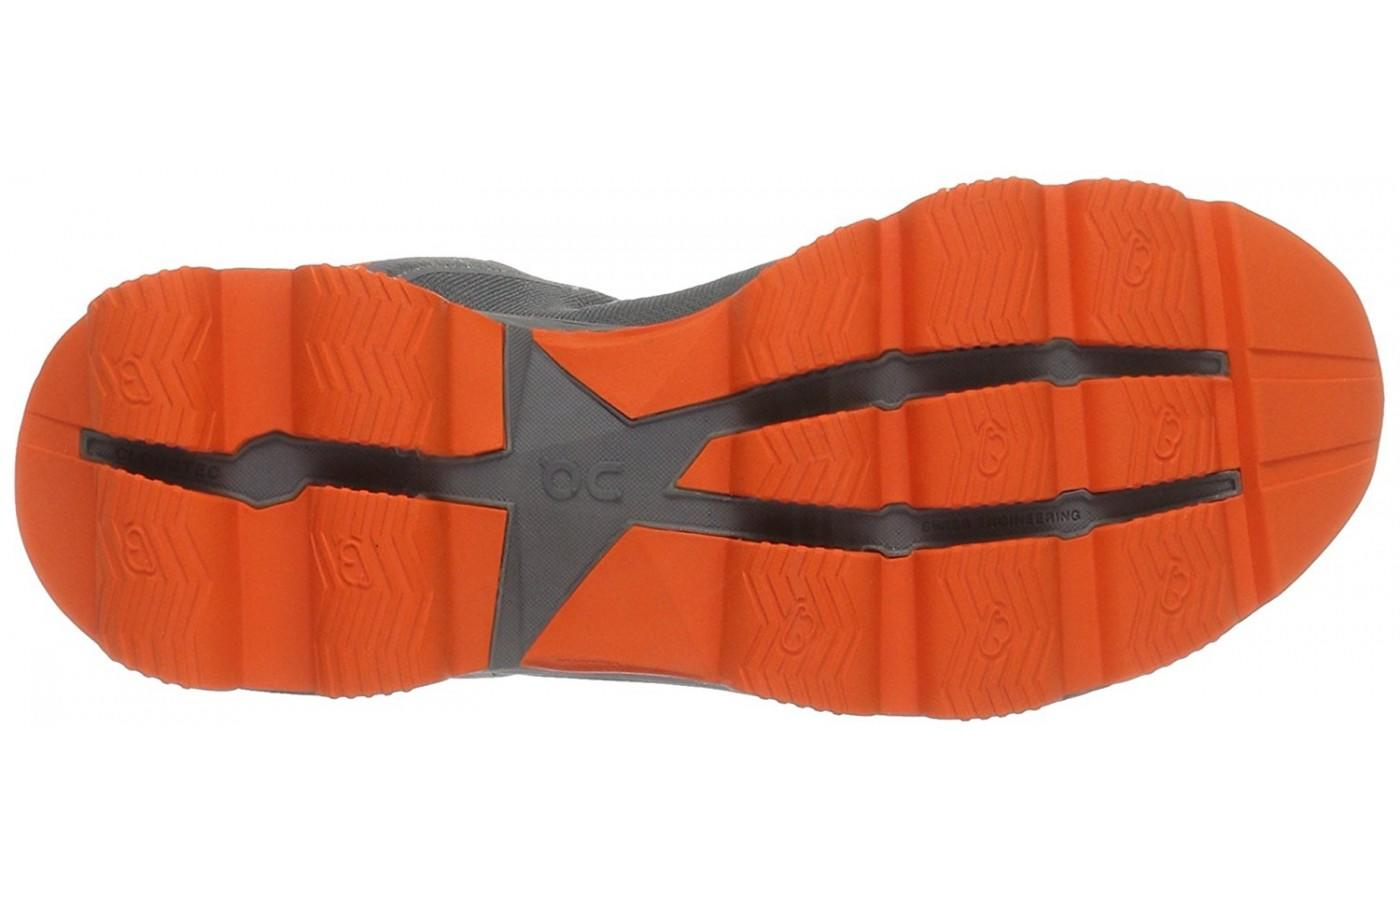 The On CloudSurfer outsole features Cloutec pillows